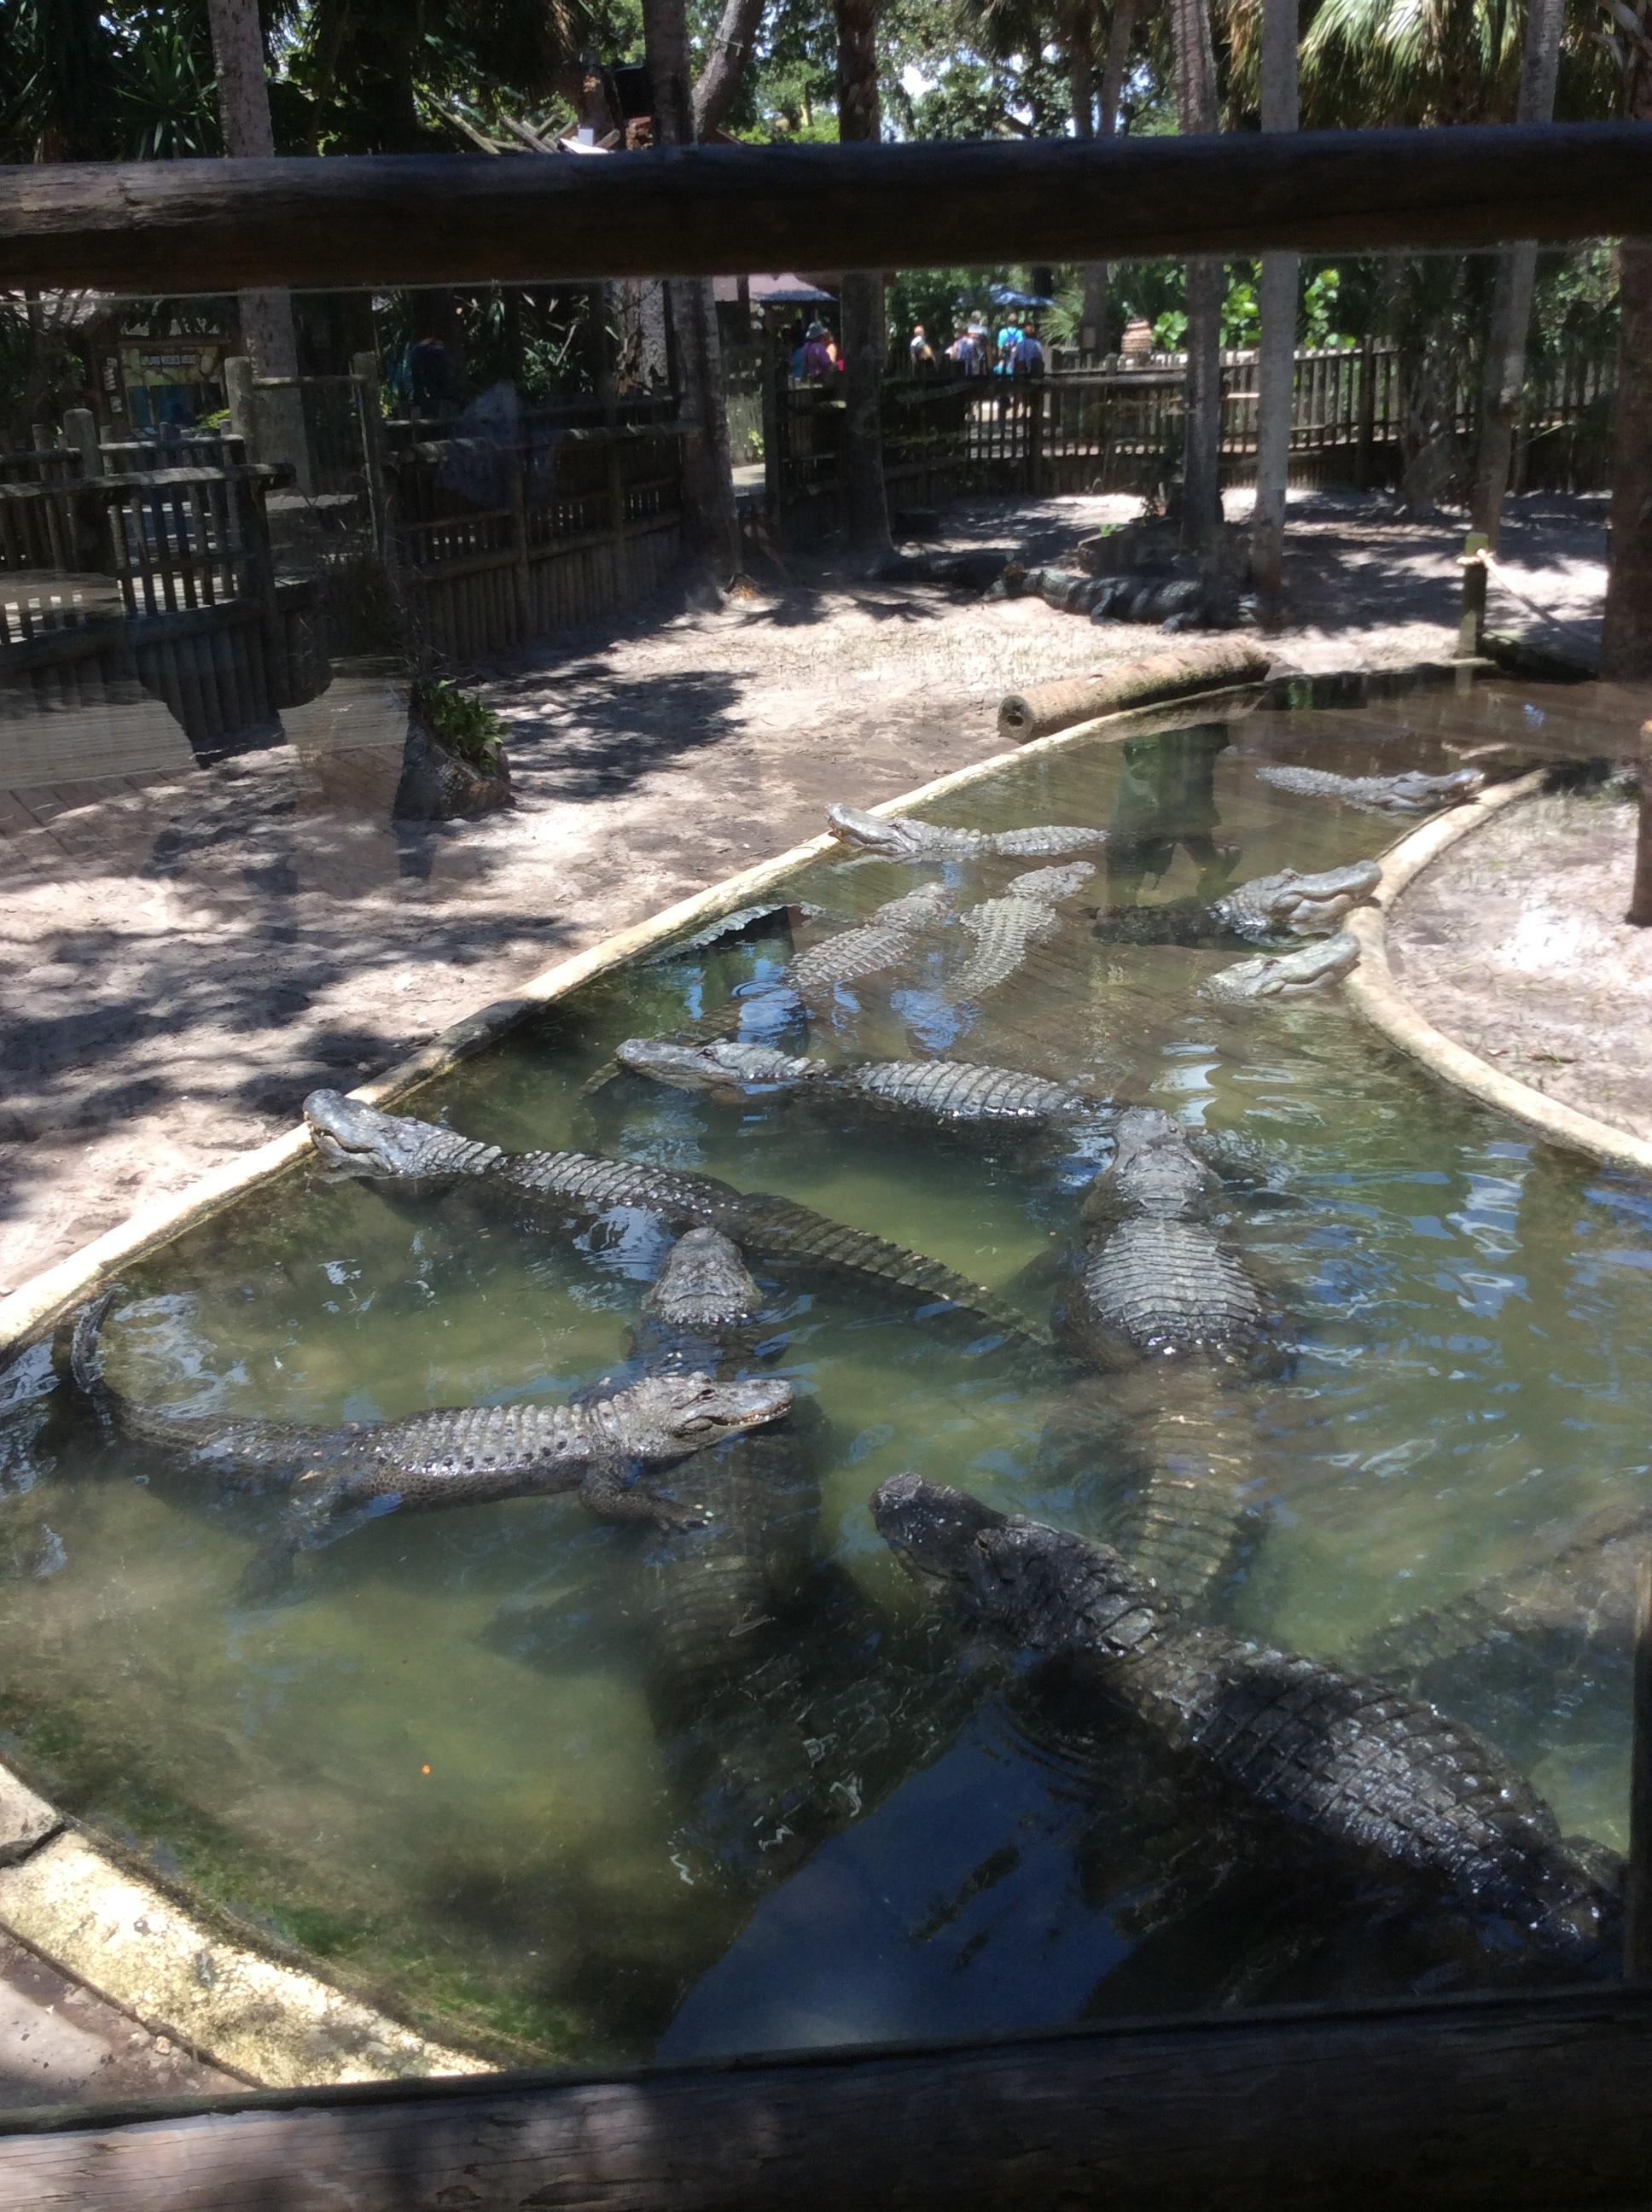 We went to the Alligator Farm